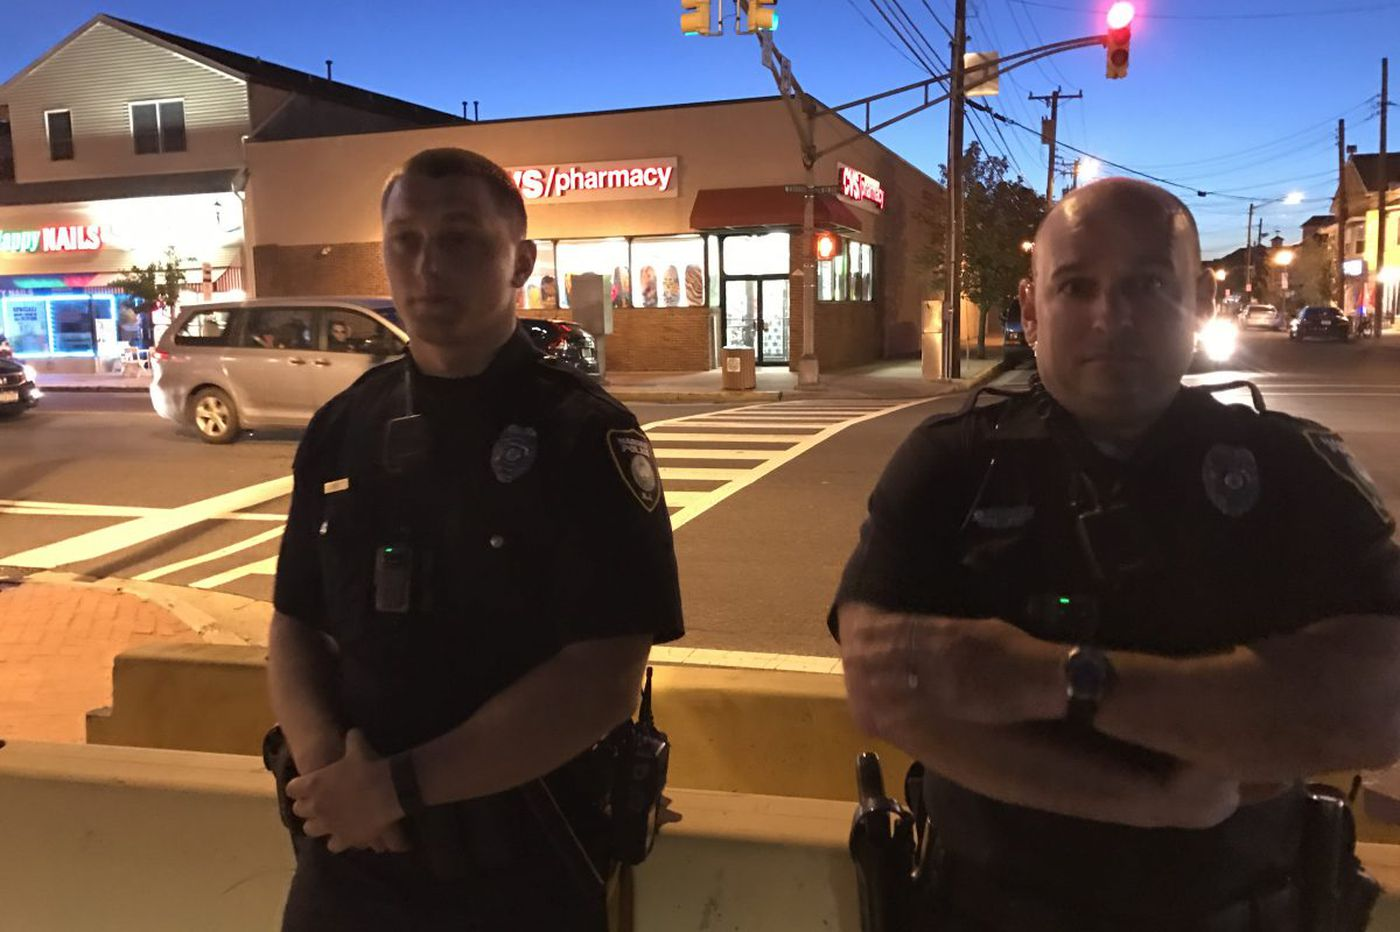 After 'Club Wa' notoriety, Margate Wawa gets its own police detail